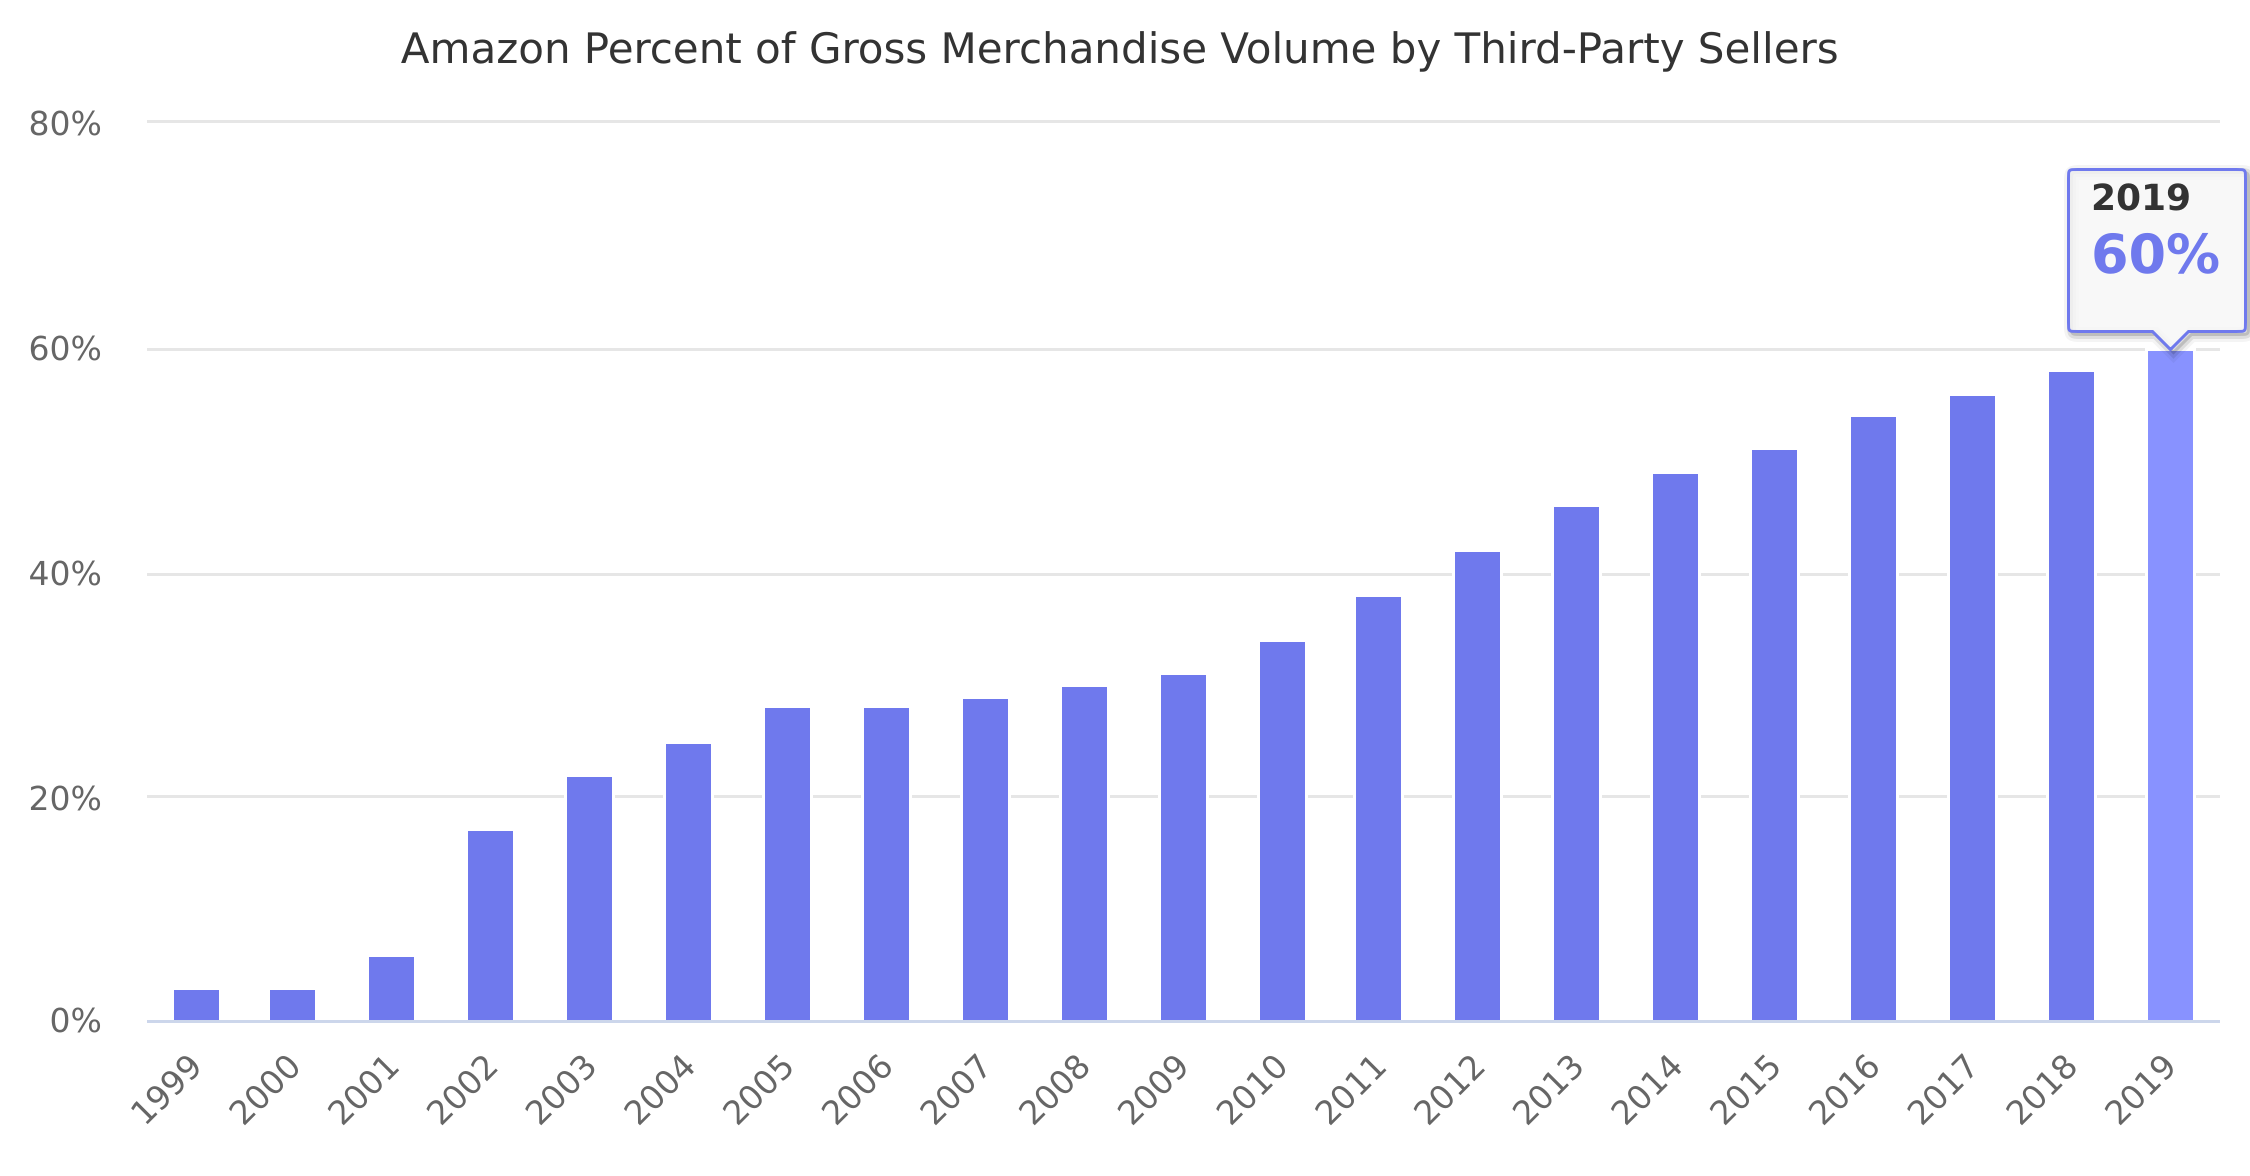 Amazon Percent of Gross Merchandise Volume by Third-Party Sellers 1999-2019